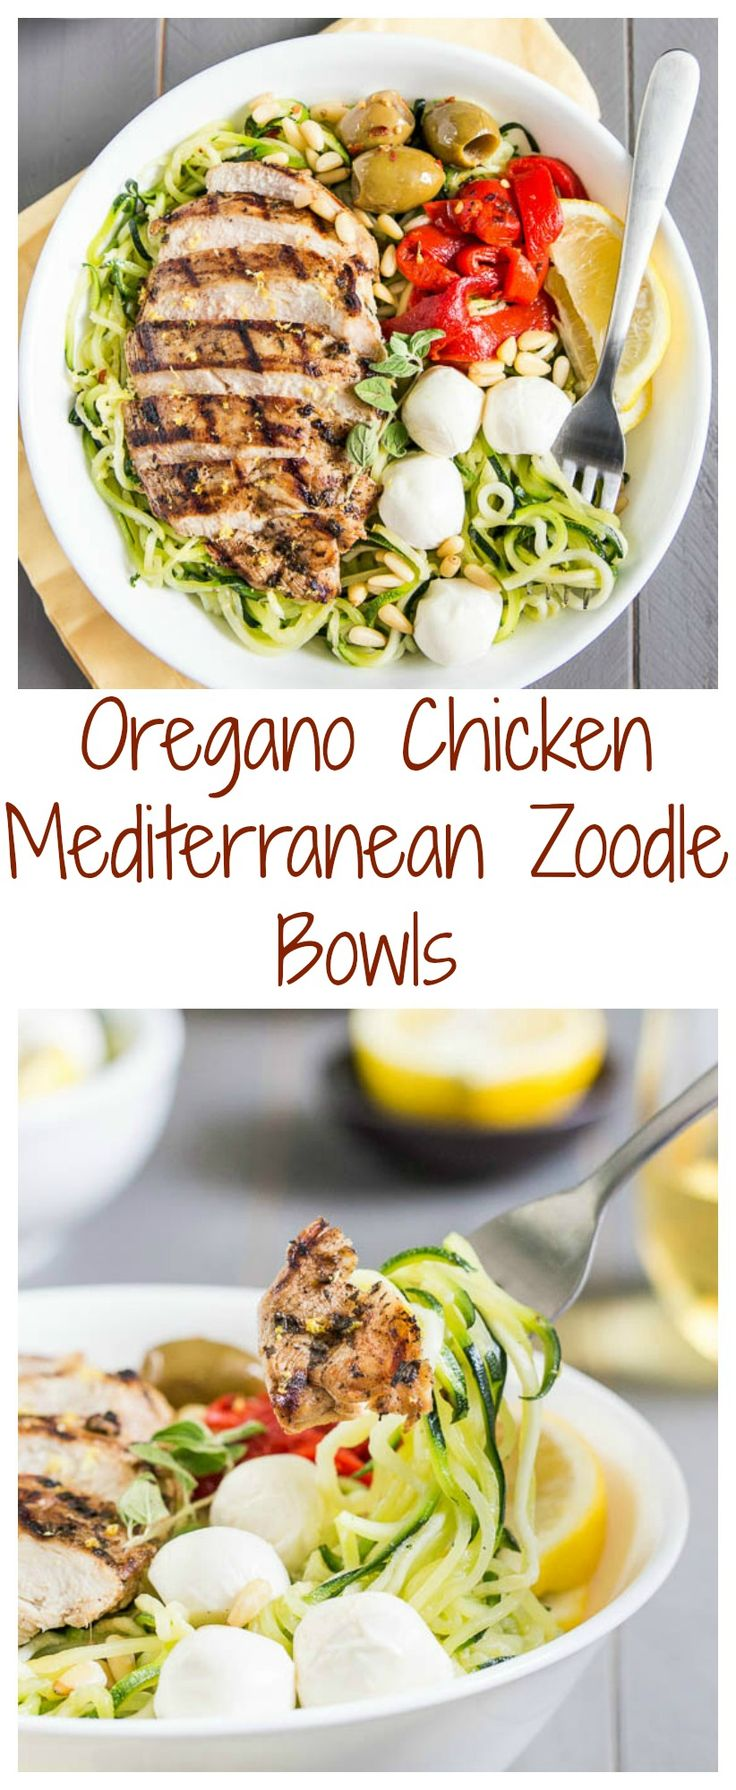 Oregano Chicken Mediterranean Zucchini Noodle Bowls - Healthy and Delicious!